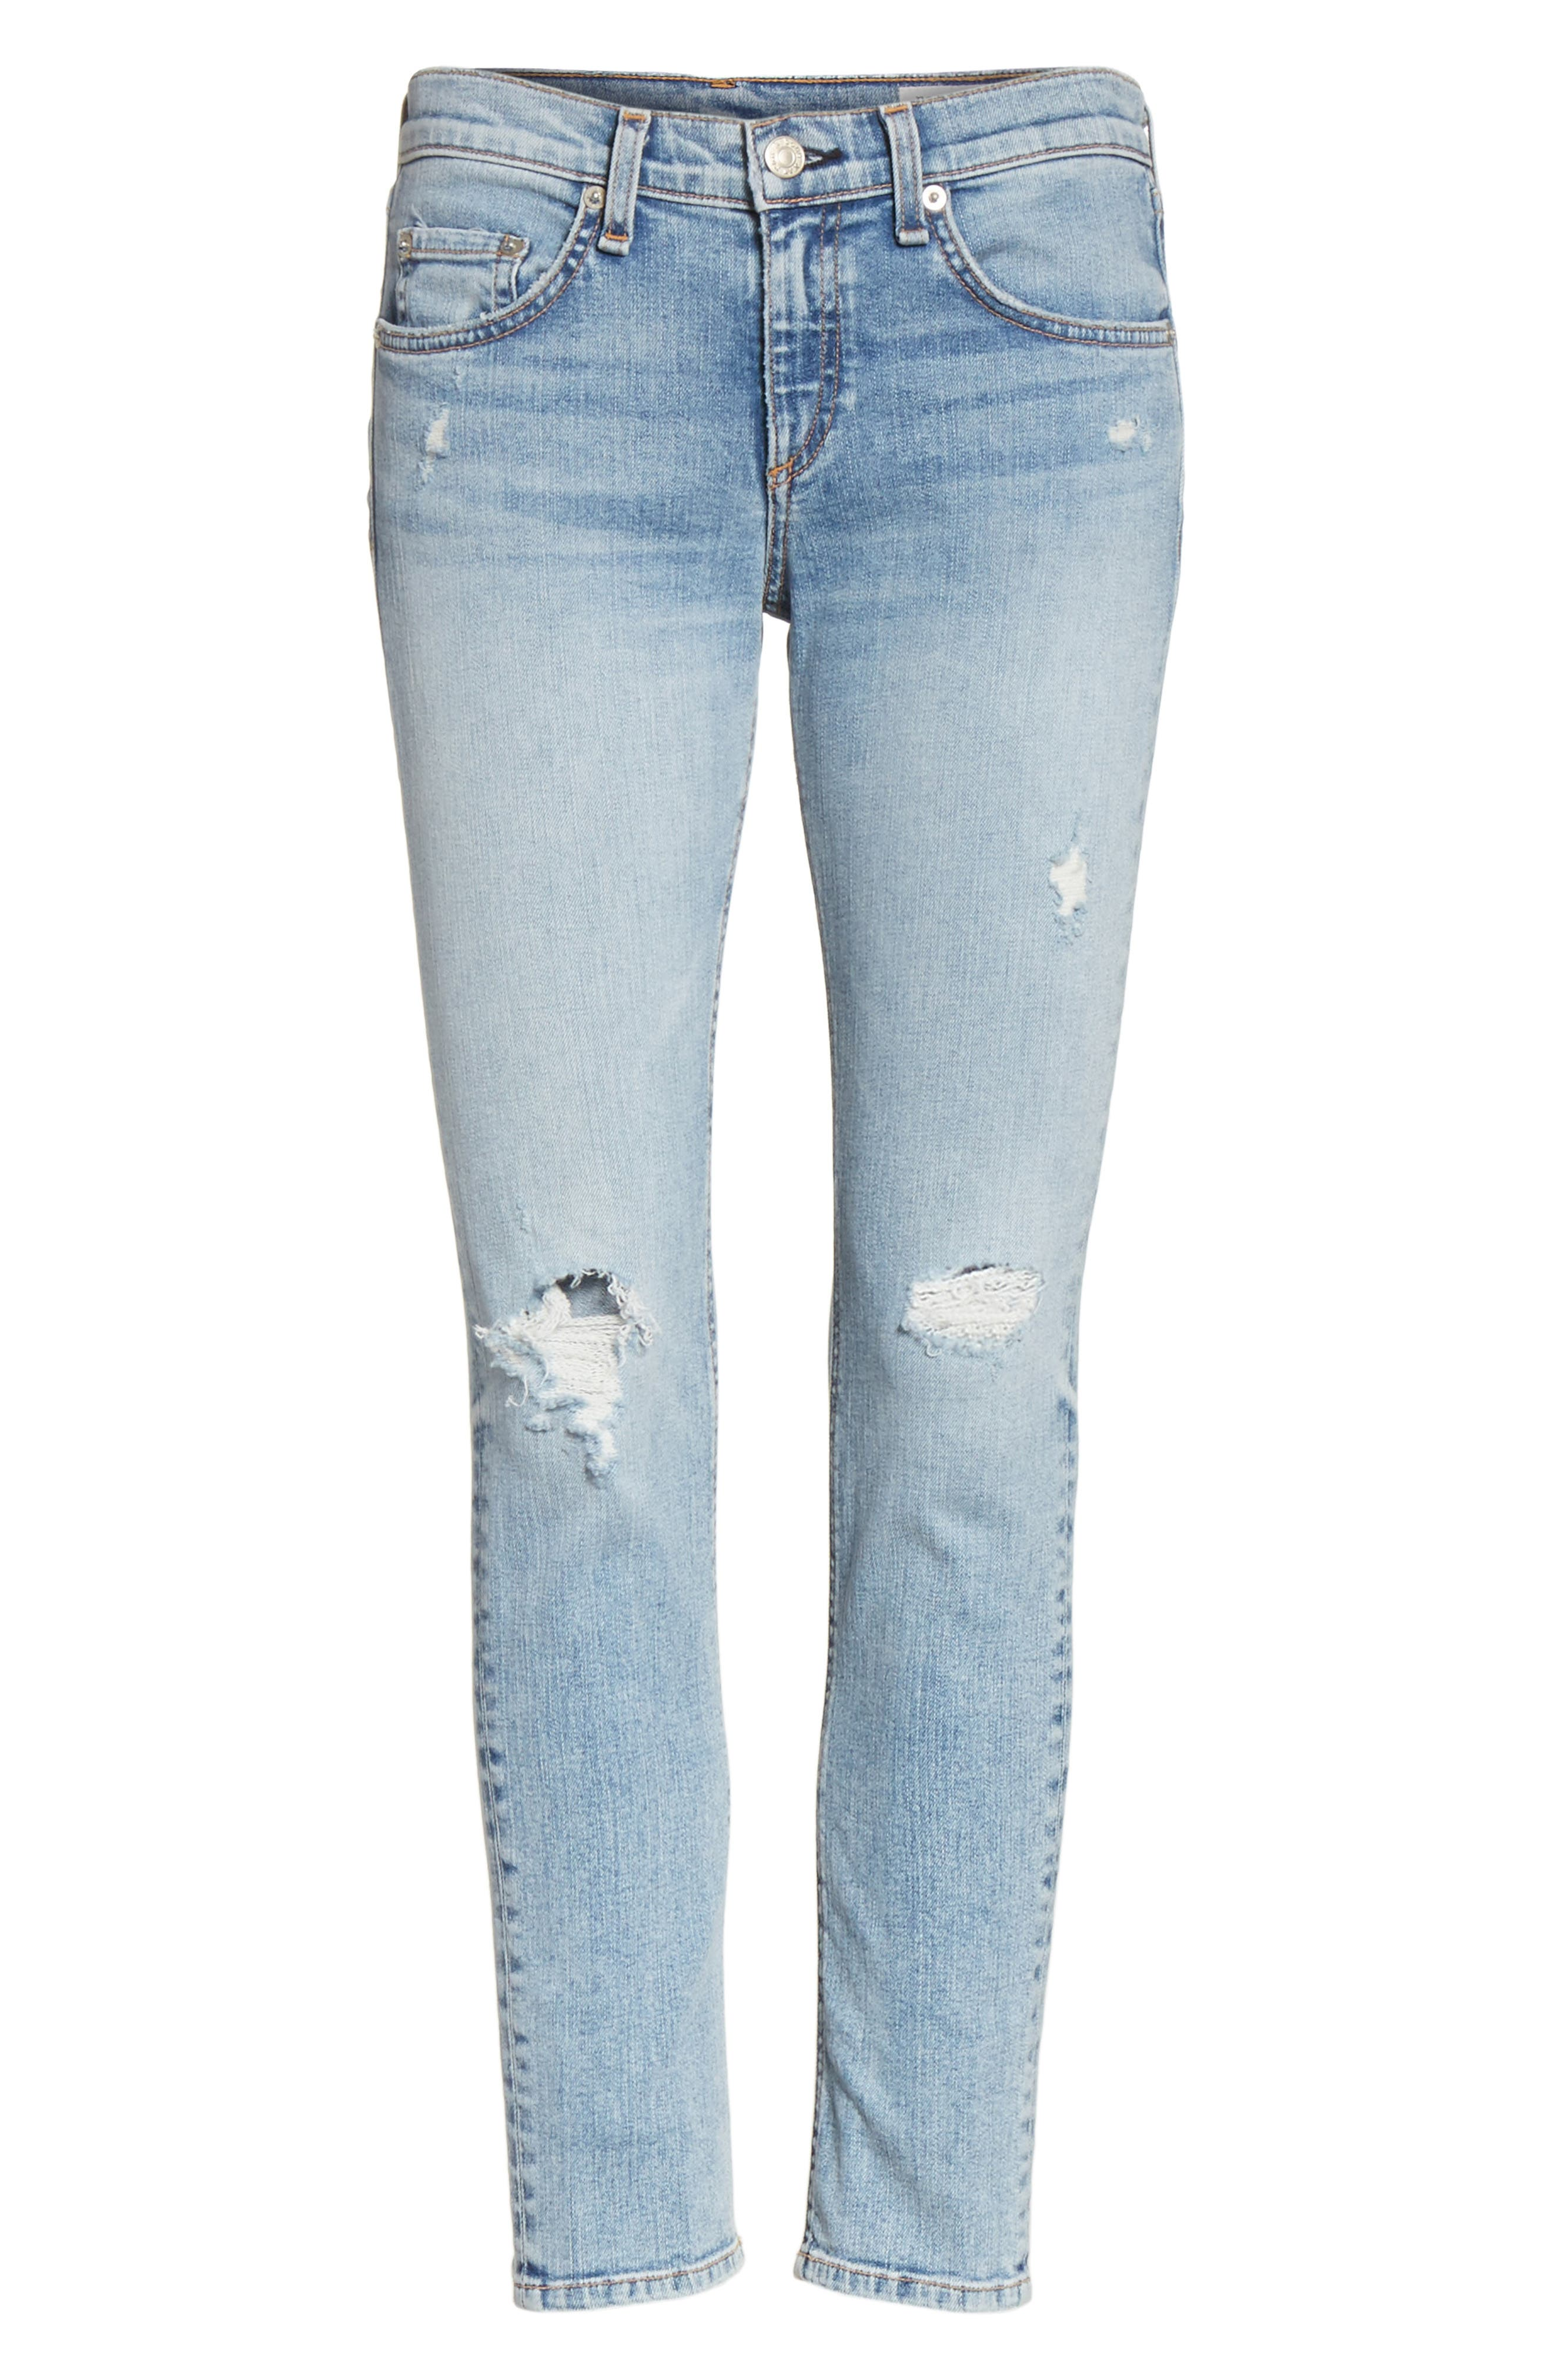 Ankle Skinny Jeans,                             Alternate thumbnail 7, color,                             Double